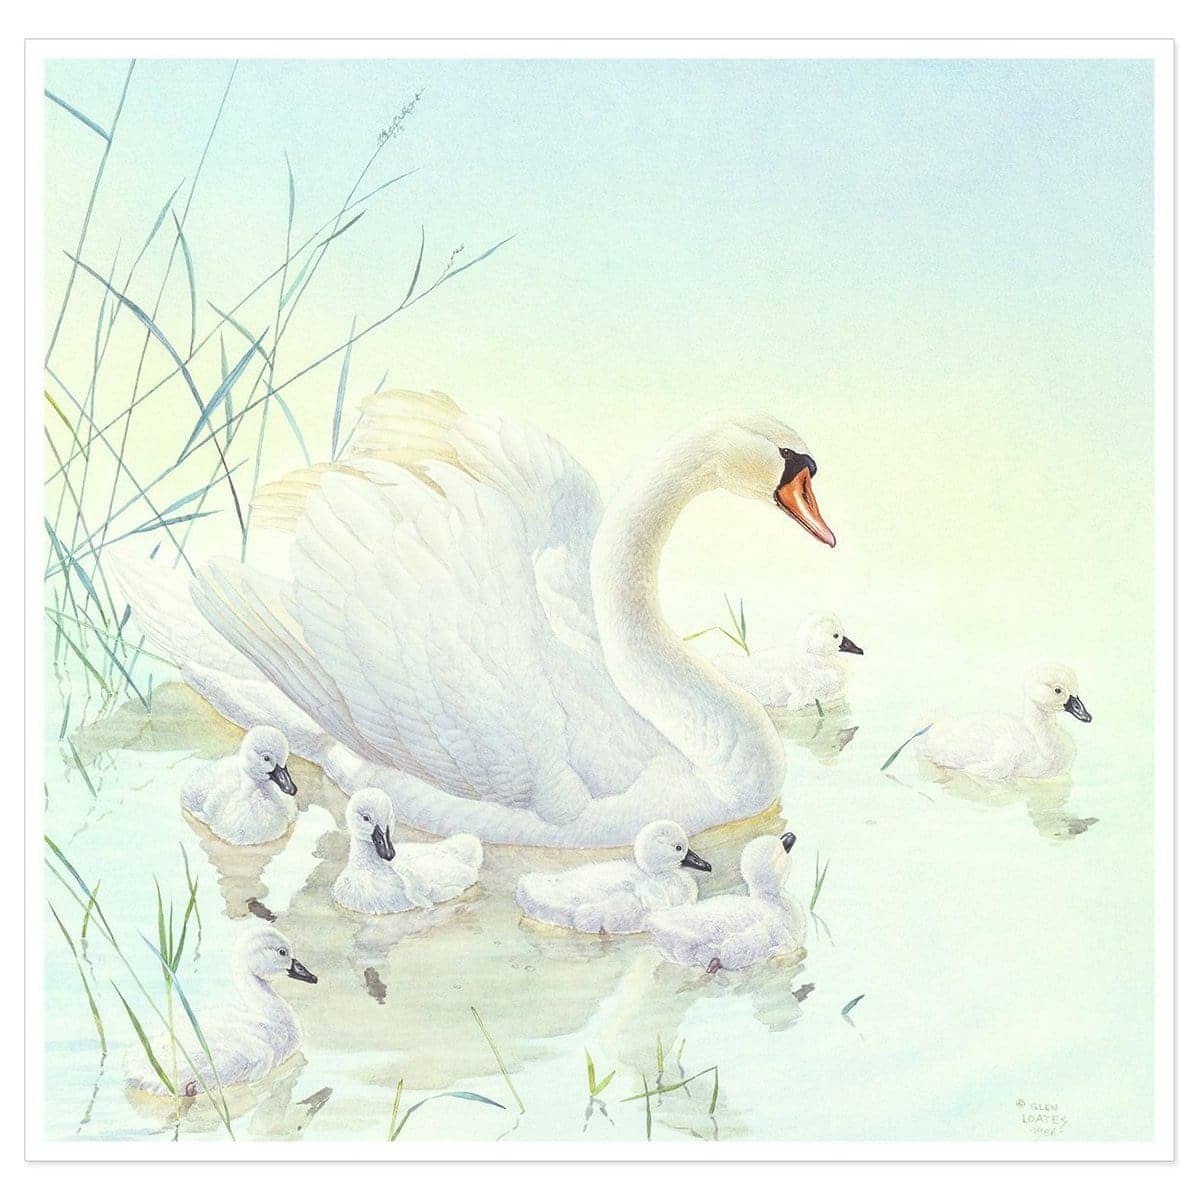 Swan Family - Art Print by Glen Loates from the Glen Loates Store